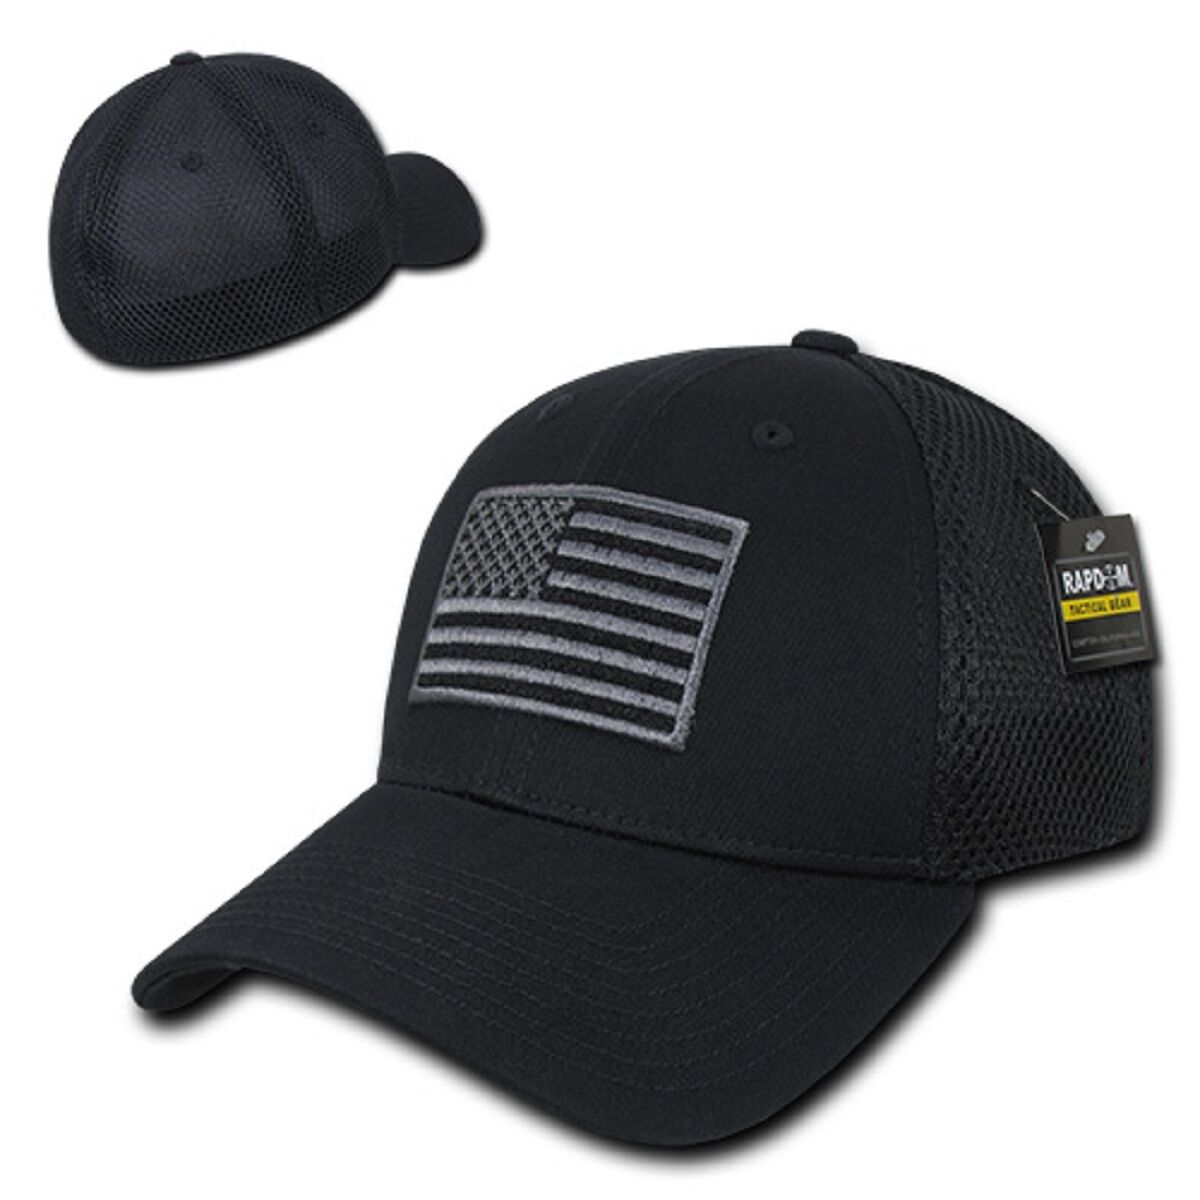 dd22bf74018 Details about Black USA US American Flag Tactical Operator Mesh Flex  Baseball Fit Hat Cap